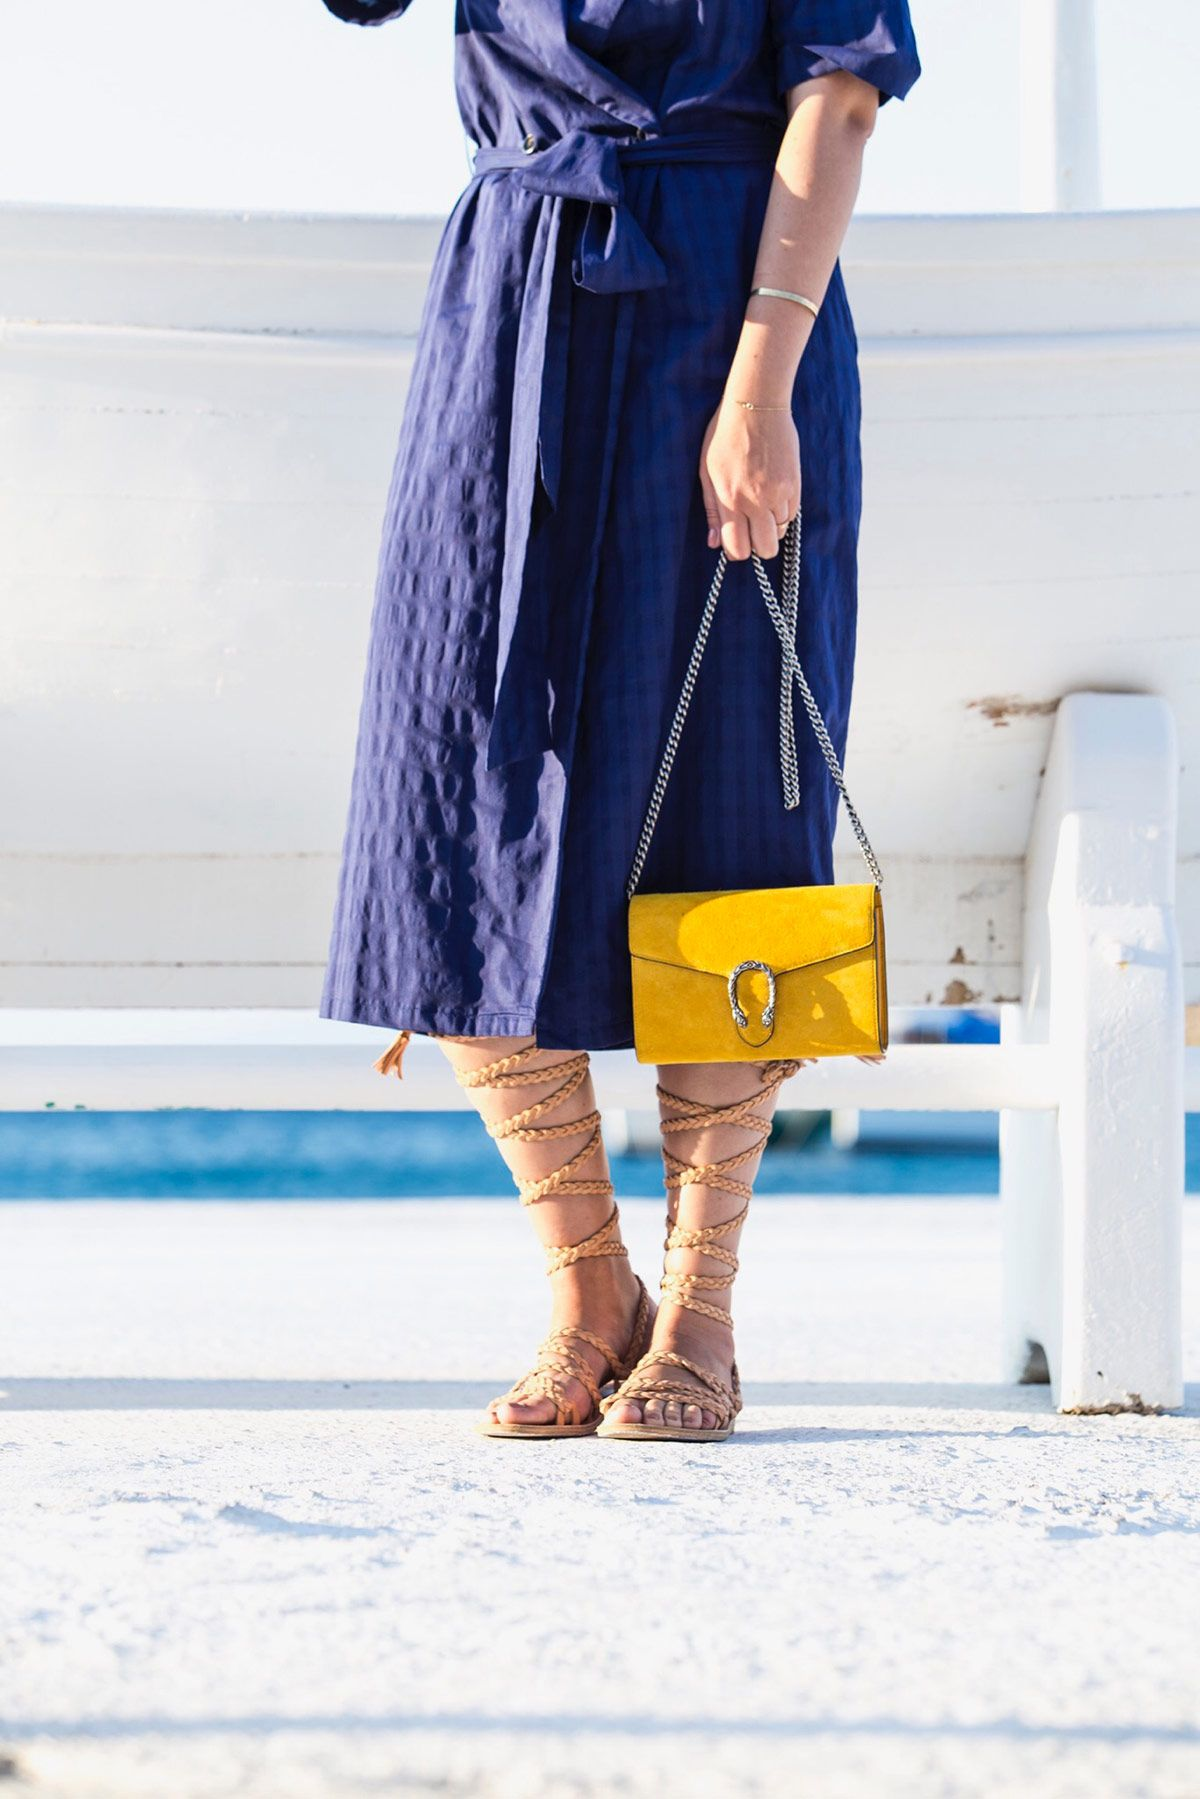 yellow Gucci Dionysus bag (chain wallet) and gladiator sandals by Stella Asteria